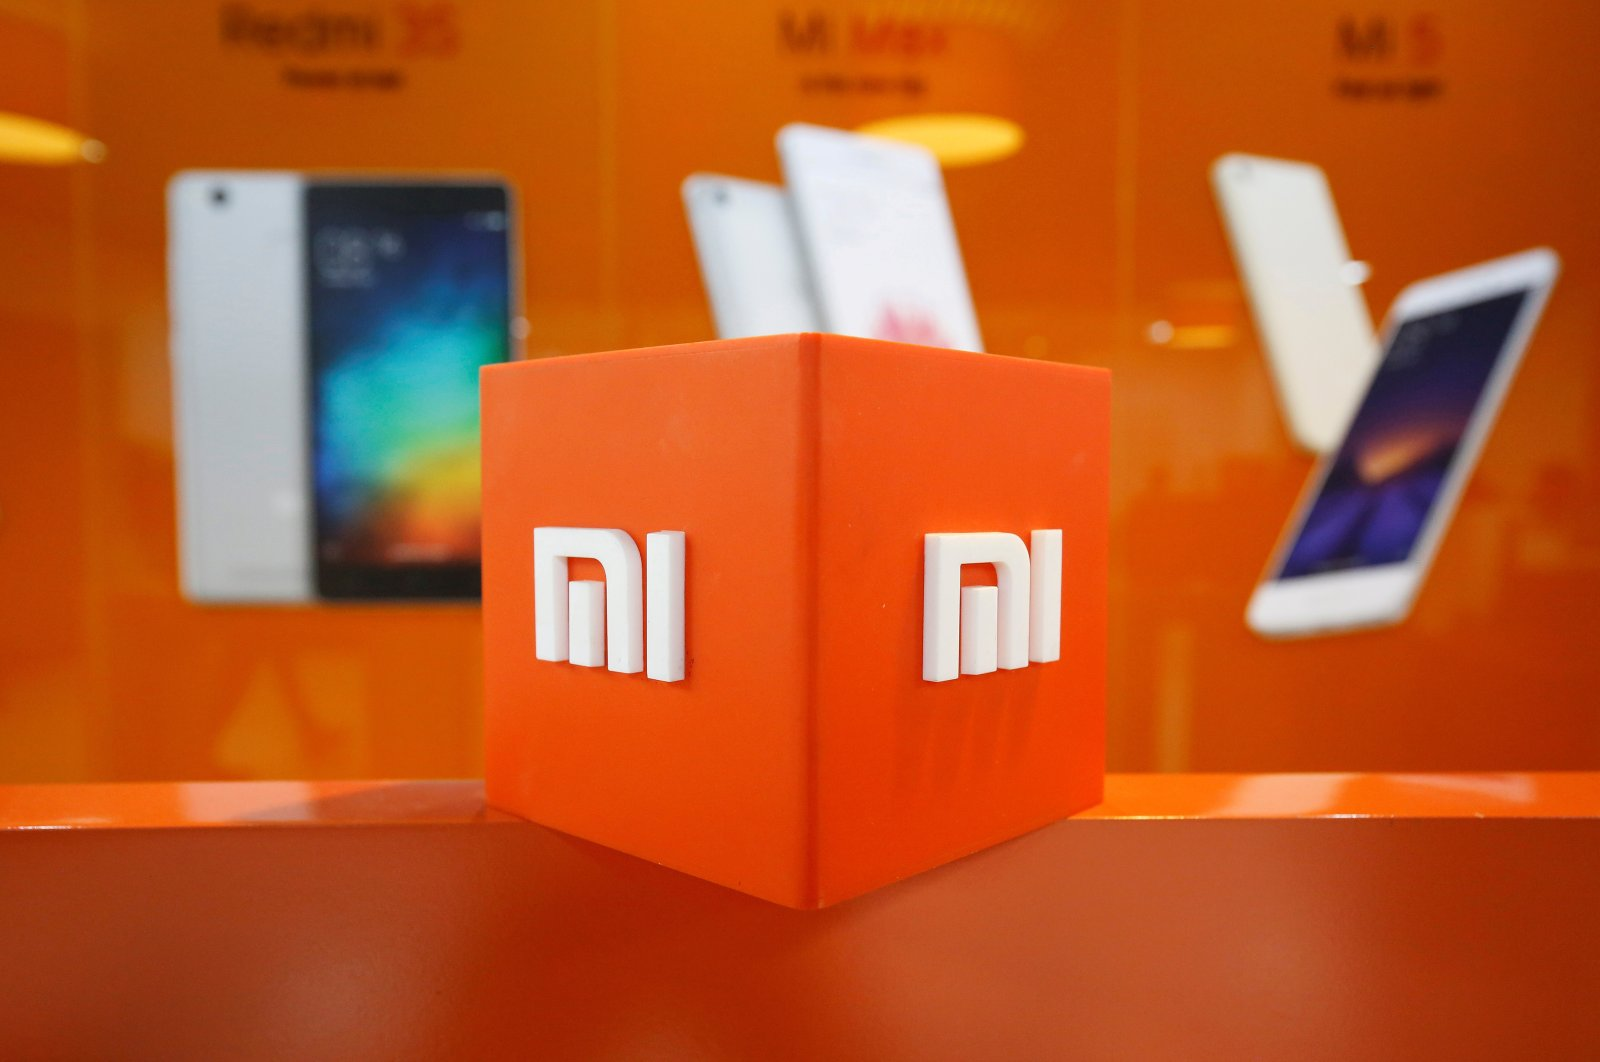 The logo of Xiaomi is seen inside the company's office in Bengaluru, India, Jan. 18, 2018. (Reuters Photo)